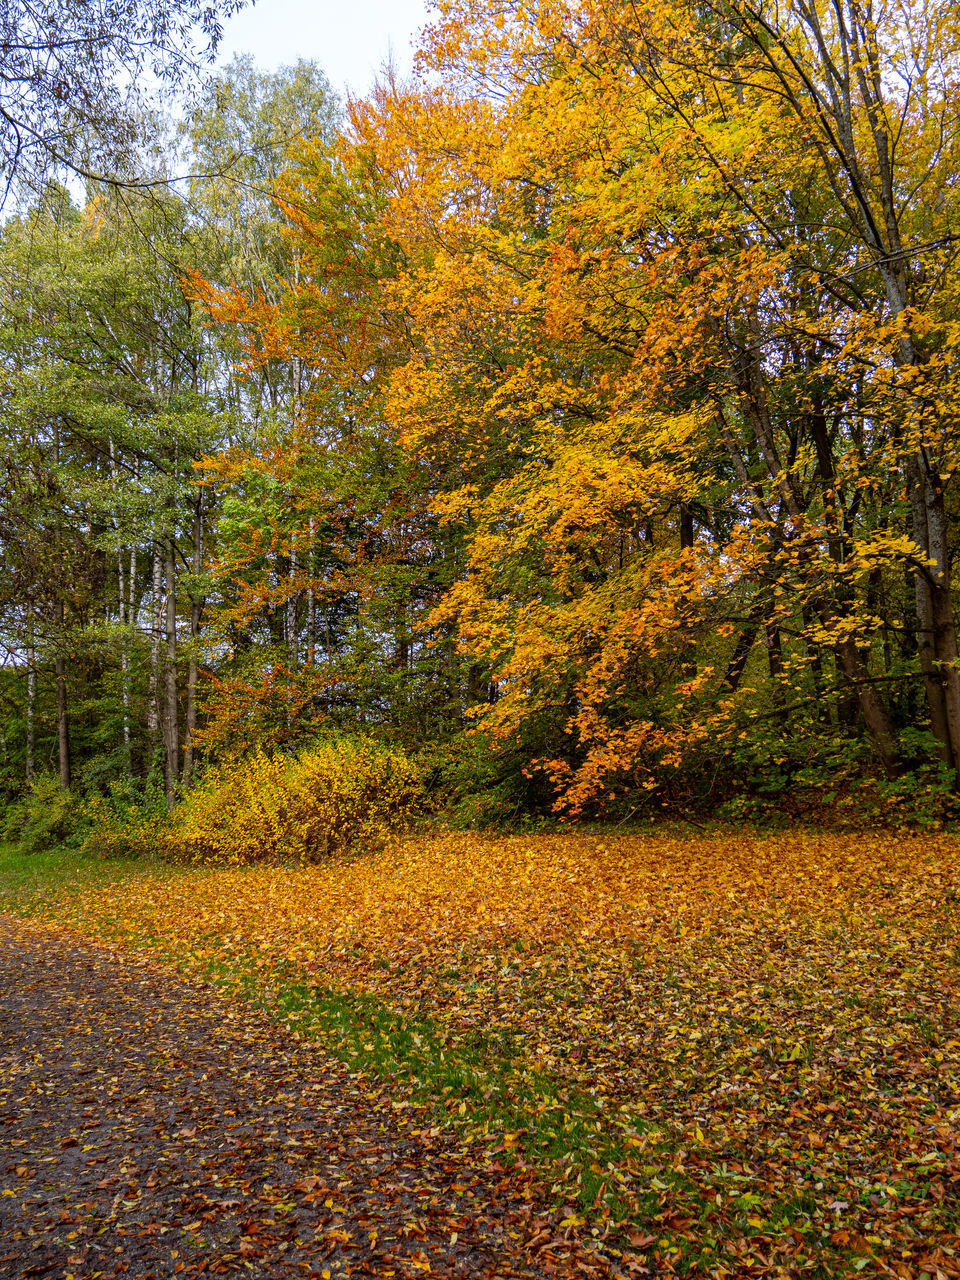 autumn, tree, change, plant, beauty in nature, leaf, plant part, tranquility, orange color, land, nature, growth, scenics - nature, day, yellow, no people, forest, tranquil scene, non-urban scene, idyllic, outdoors, fall, autumn collection, leaves, natural condition